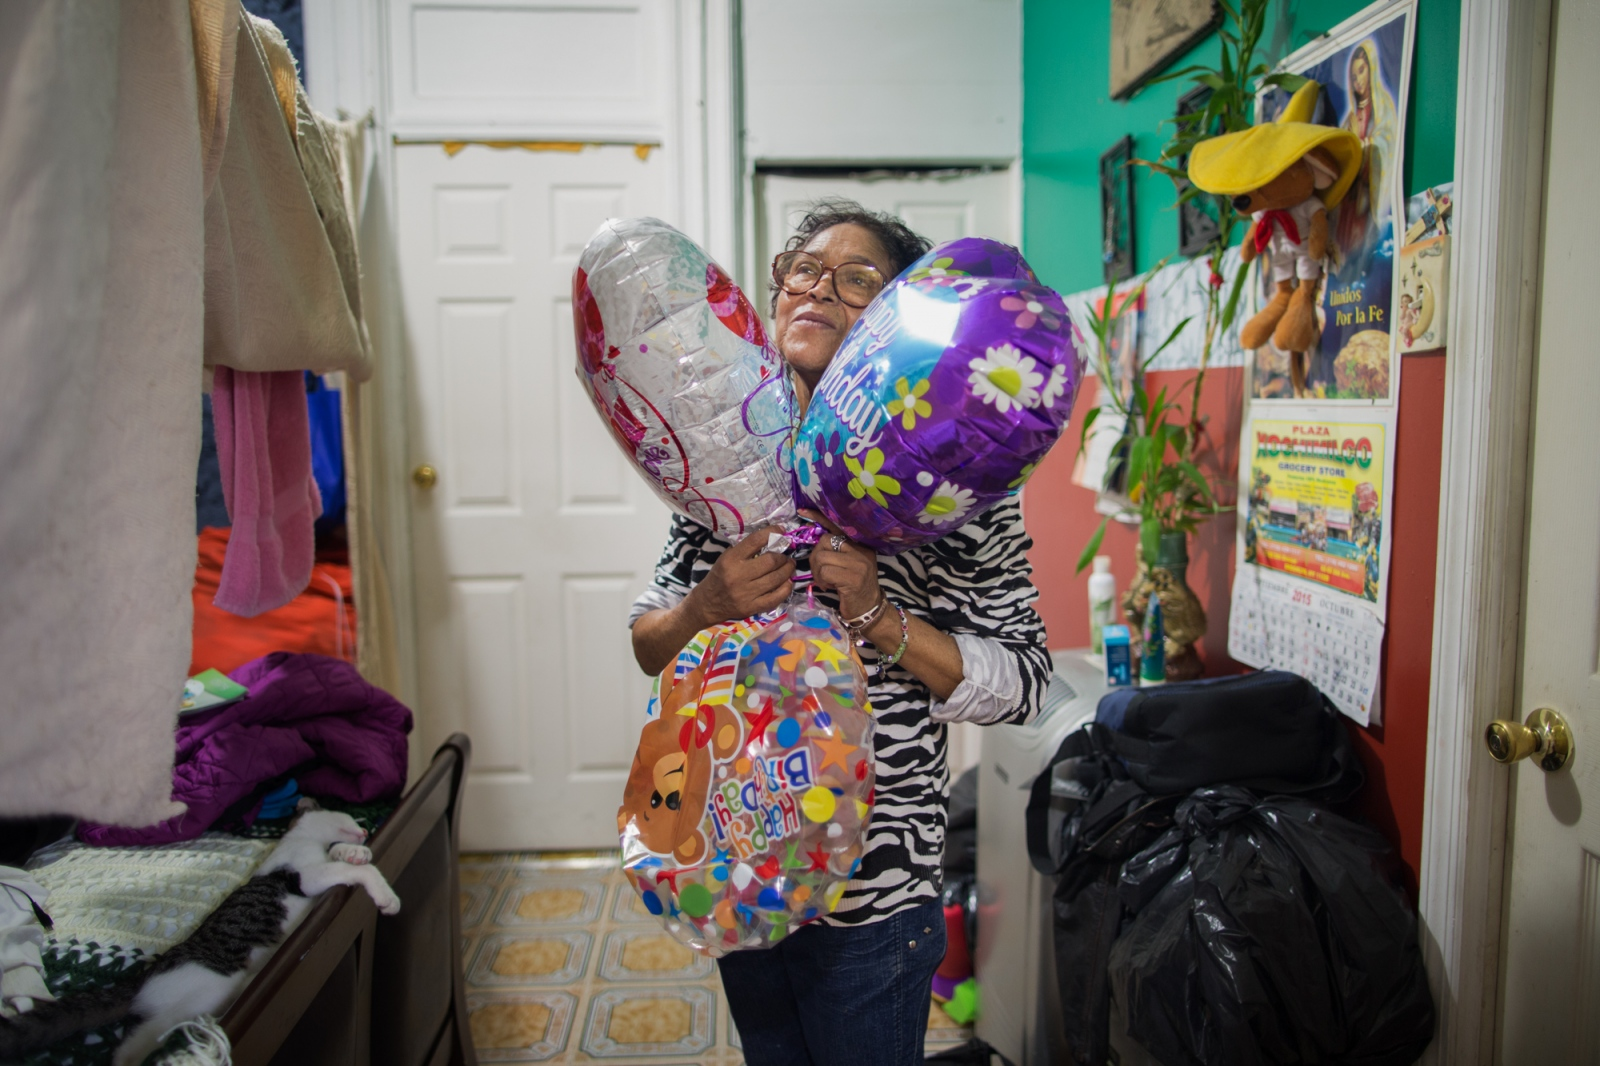 Irma in her house surrounded by balloons that were given to her by her children and grandchildren for her 65th. birthday. Sunset Park, Brooklyn, New York. 2016.